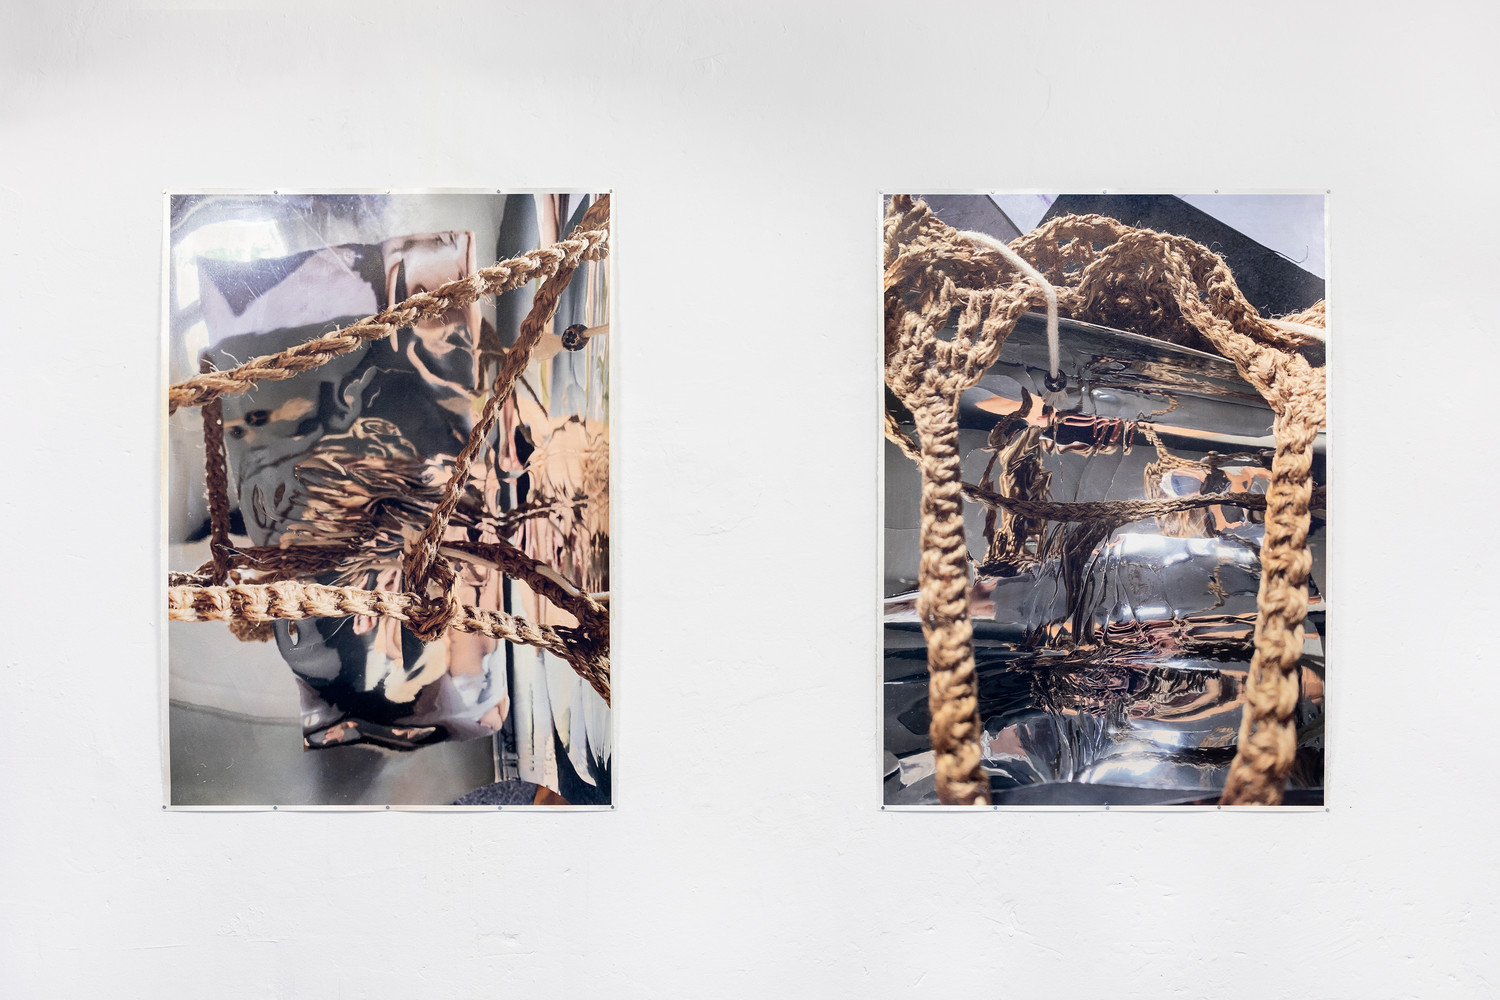 Self-portrait 3-4 [from left to right], 2020, acrylic and ink on paper, each 107 x 78 cm — © Manon Wertenbroek